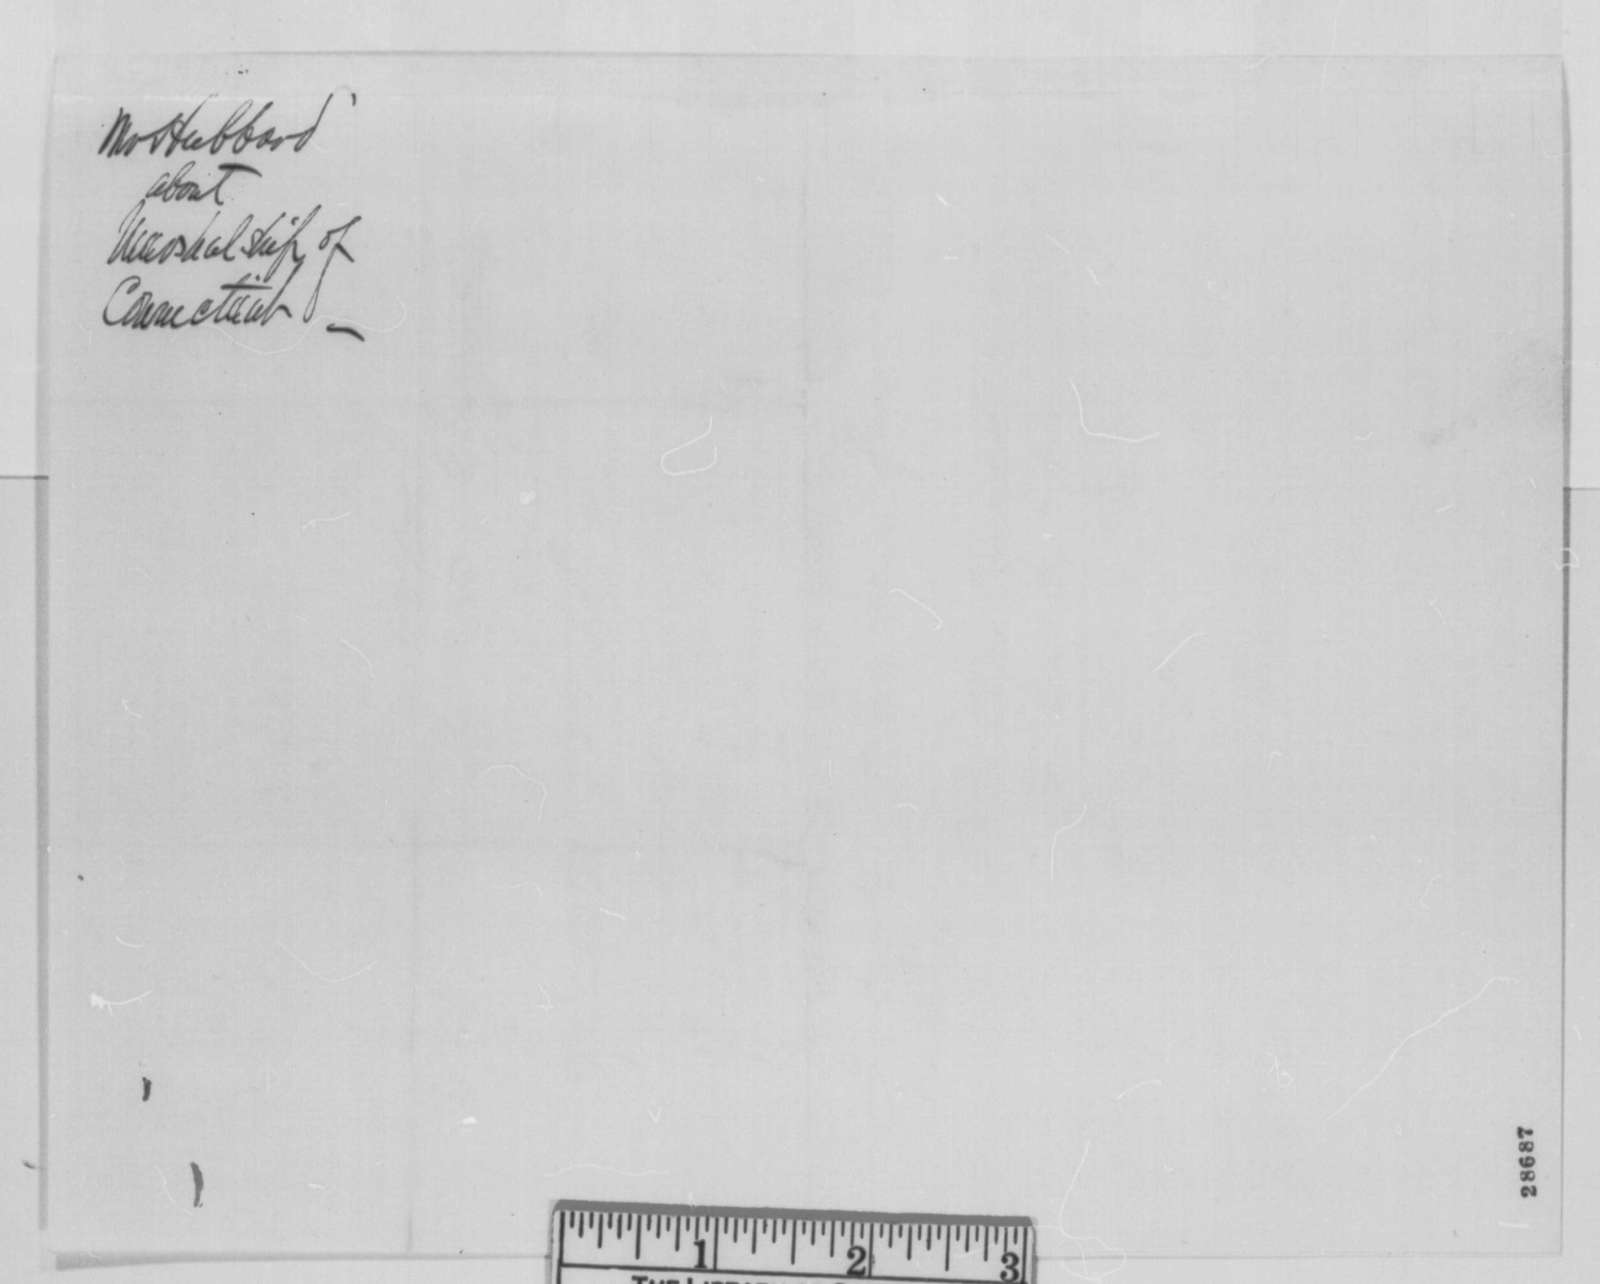 John H. Hubbard to Abraham Lincoln, Tuesday, December 15, 1863  (Recommendation for U. S. Marshal in Connecticut)